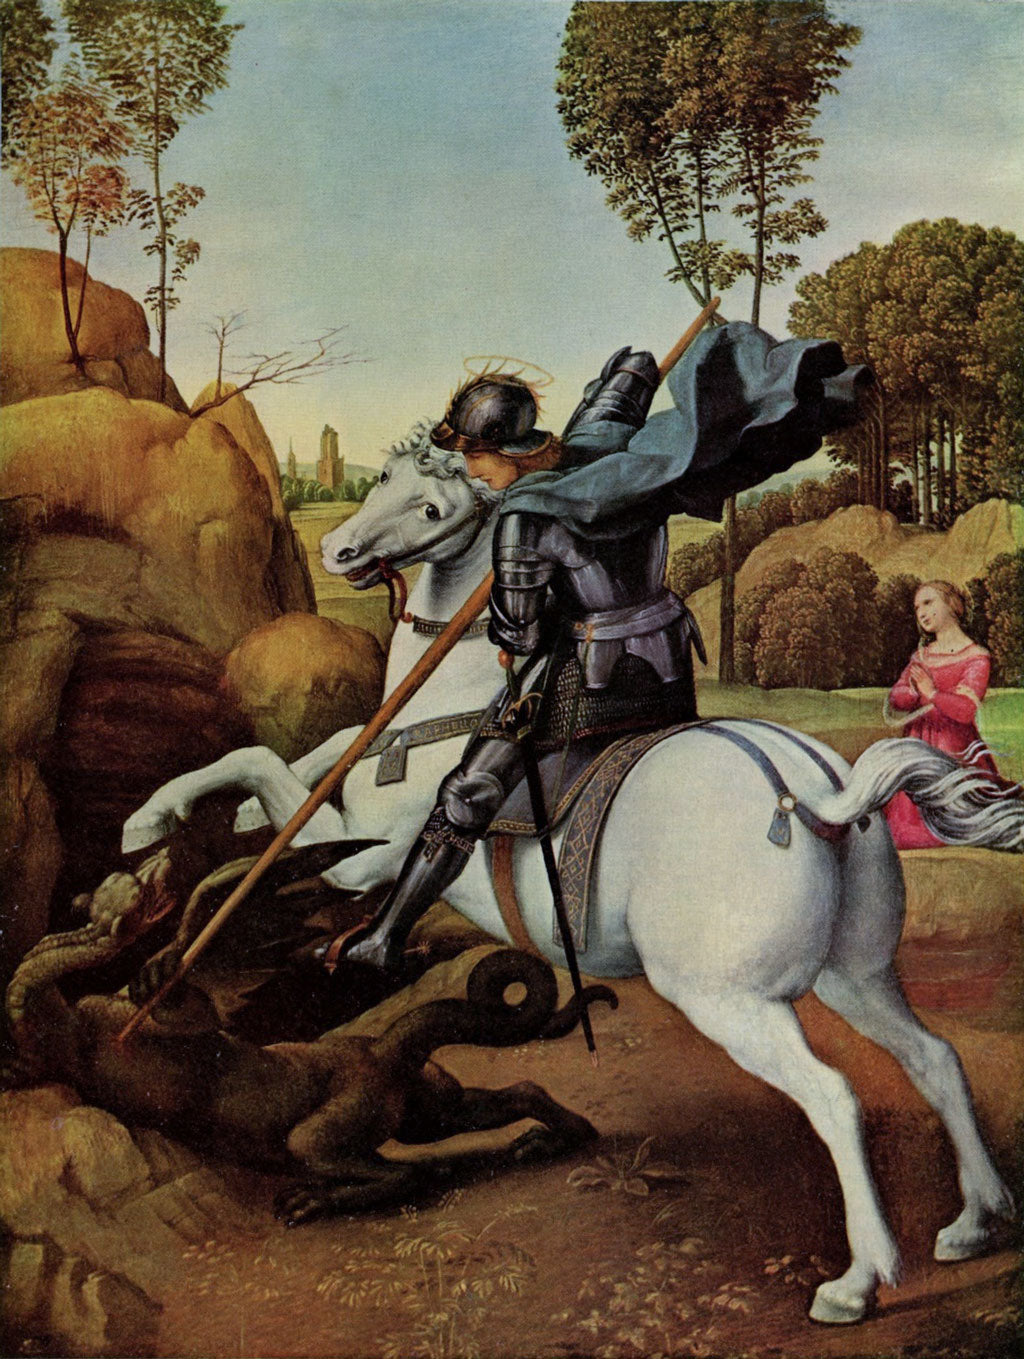 Saint George and the Dragon, Raphael